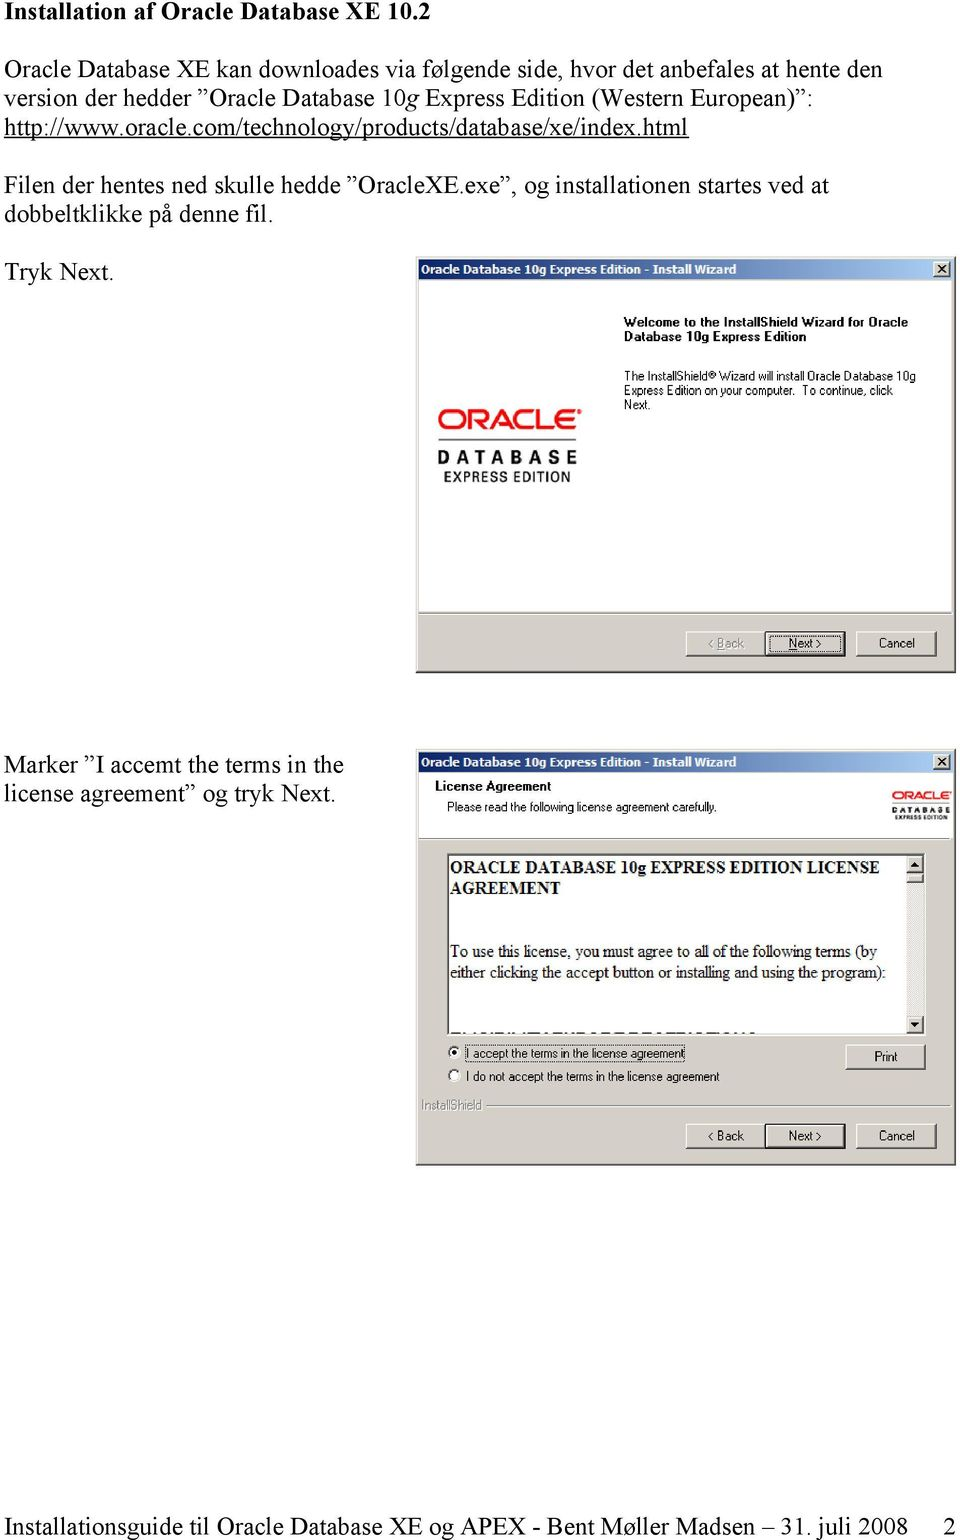 Edition (Western European) : http://www.oracle.com/technology/products/database/xe/index.